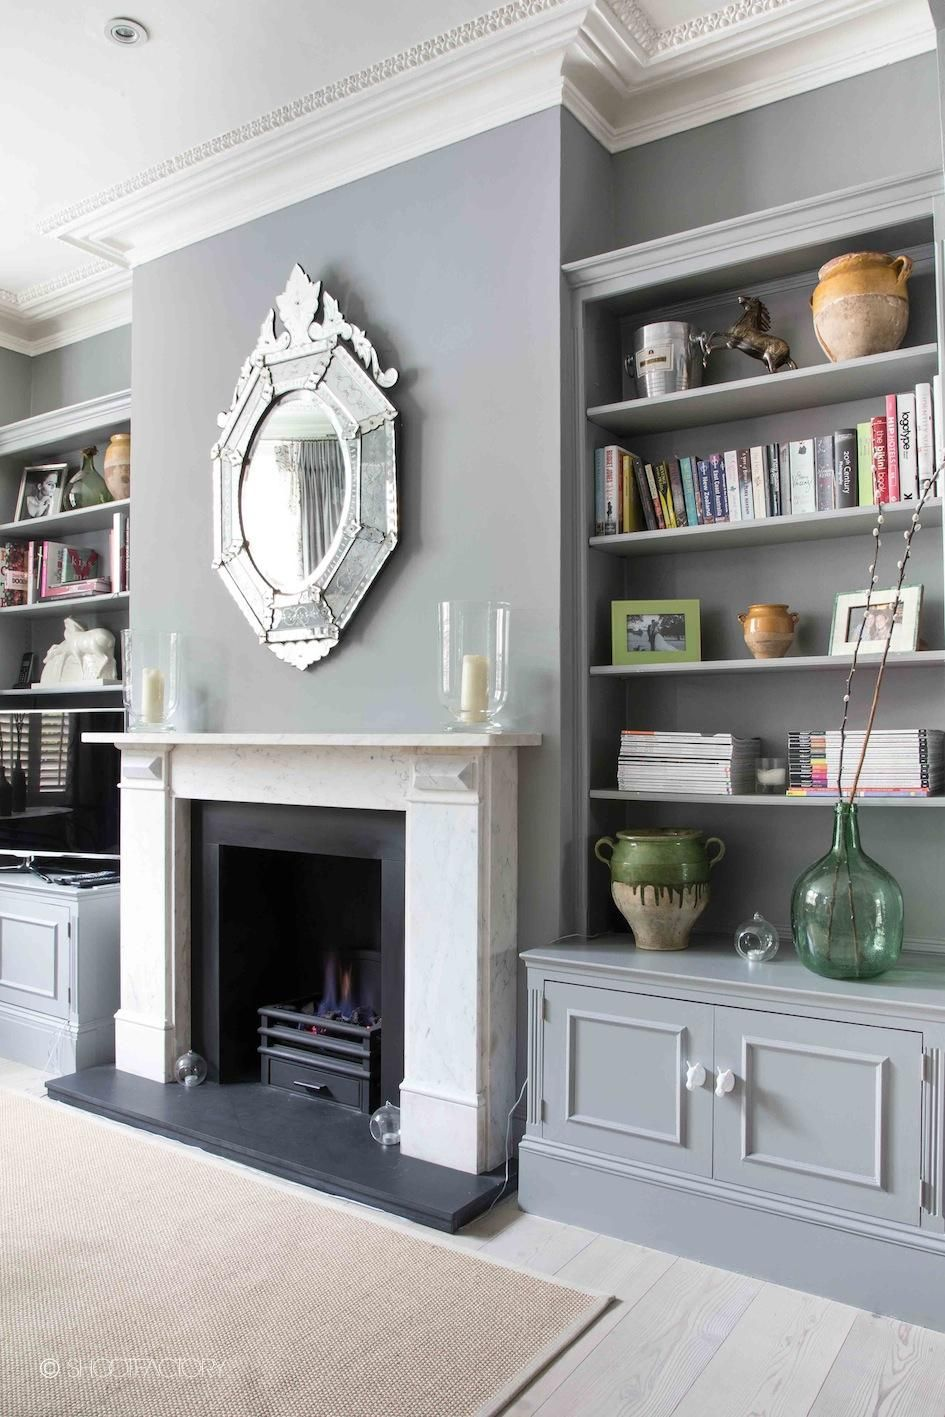 10 Tips For Decorating With Mirrors Victorian FireplaceVictorian Living RoomVictorian HousesVictorian Terrace